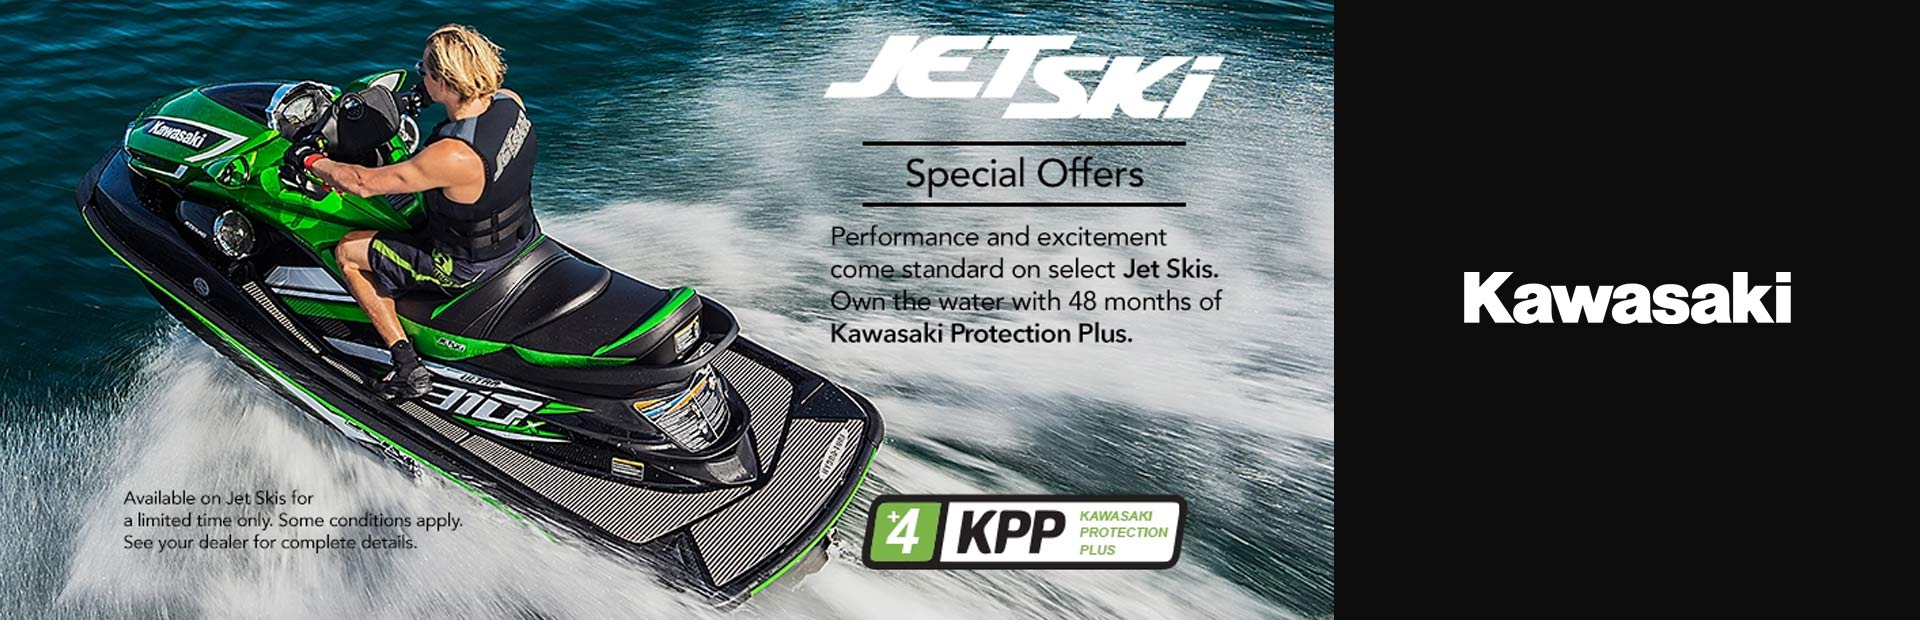 Kawasaki: Protect Your Investment - Jet Ski KPP